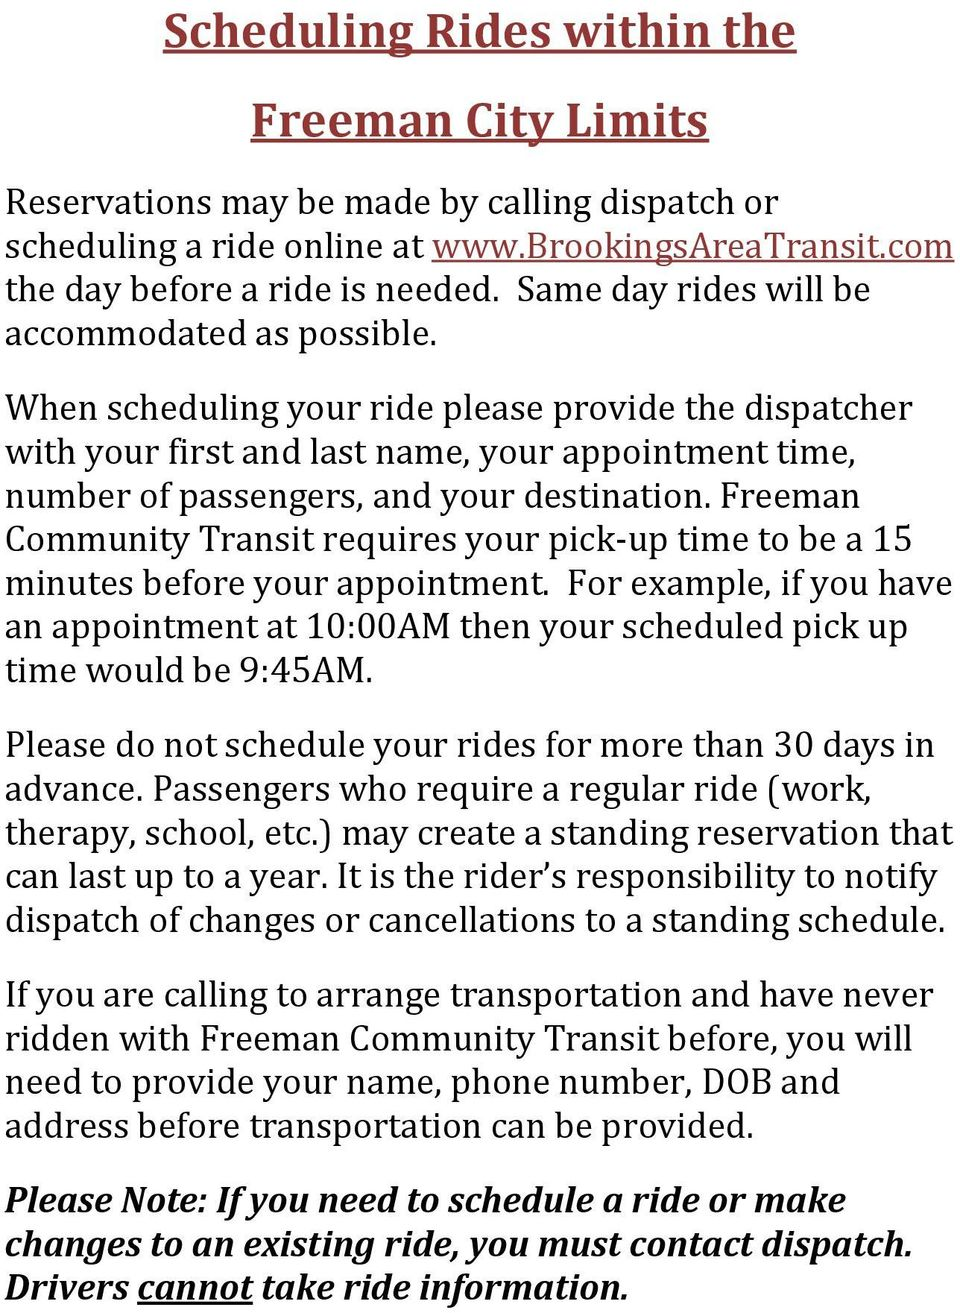 When scheduling your ride please provide the dispatcher with your first and last name, your appointment time, number of passengers, and your destination.